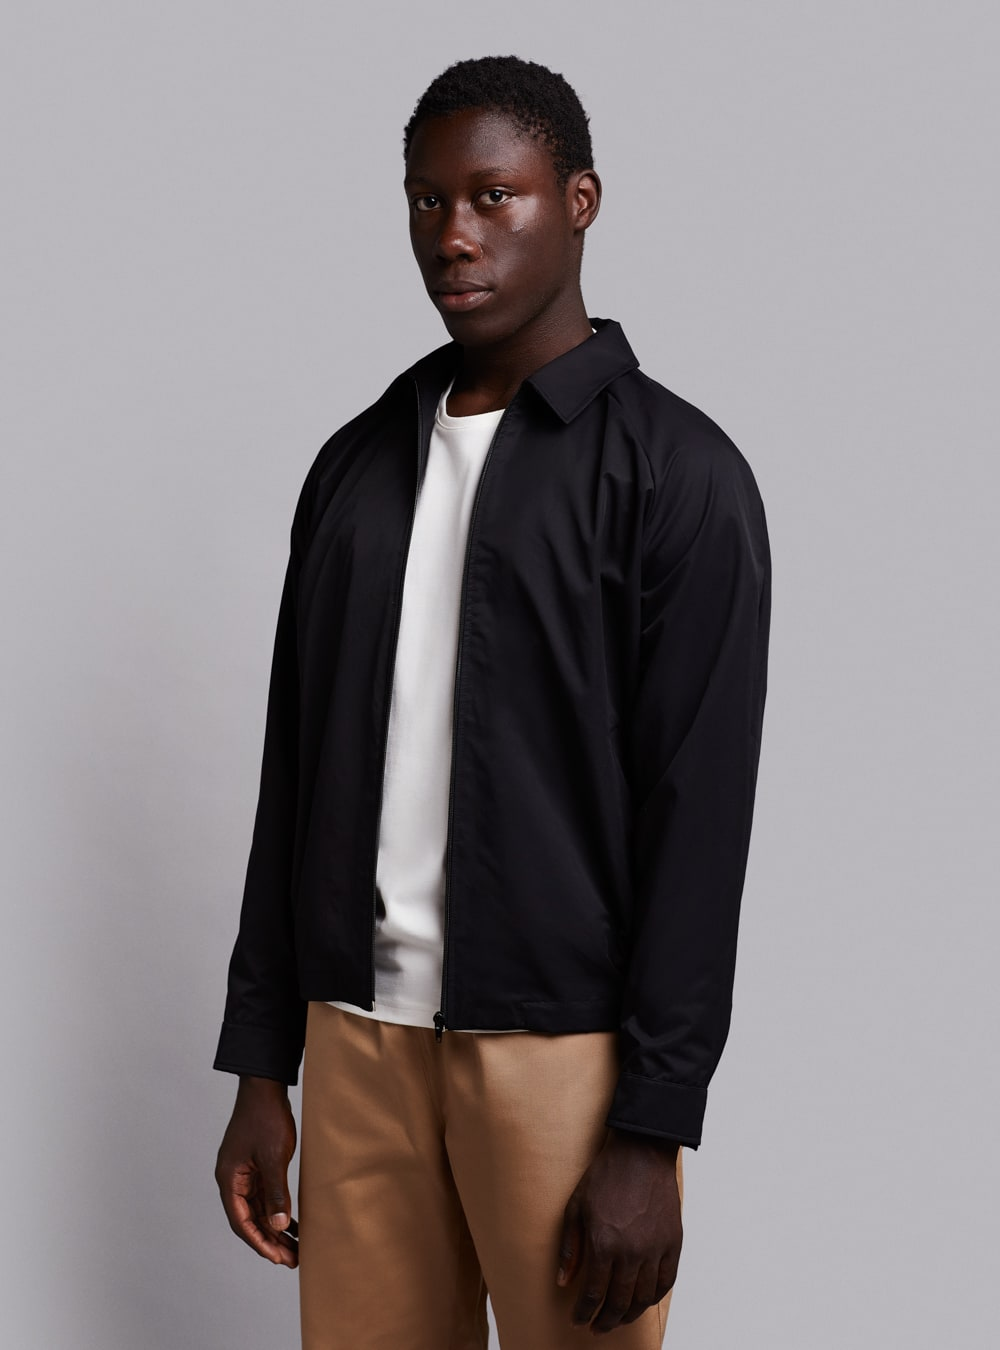 Harrington jacket (lightweight) in black, made in Portugal by wetheknot.